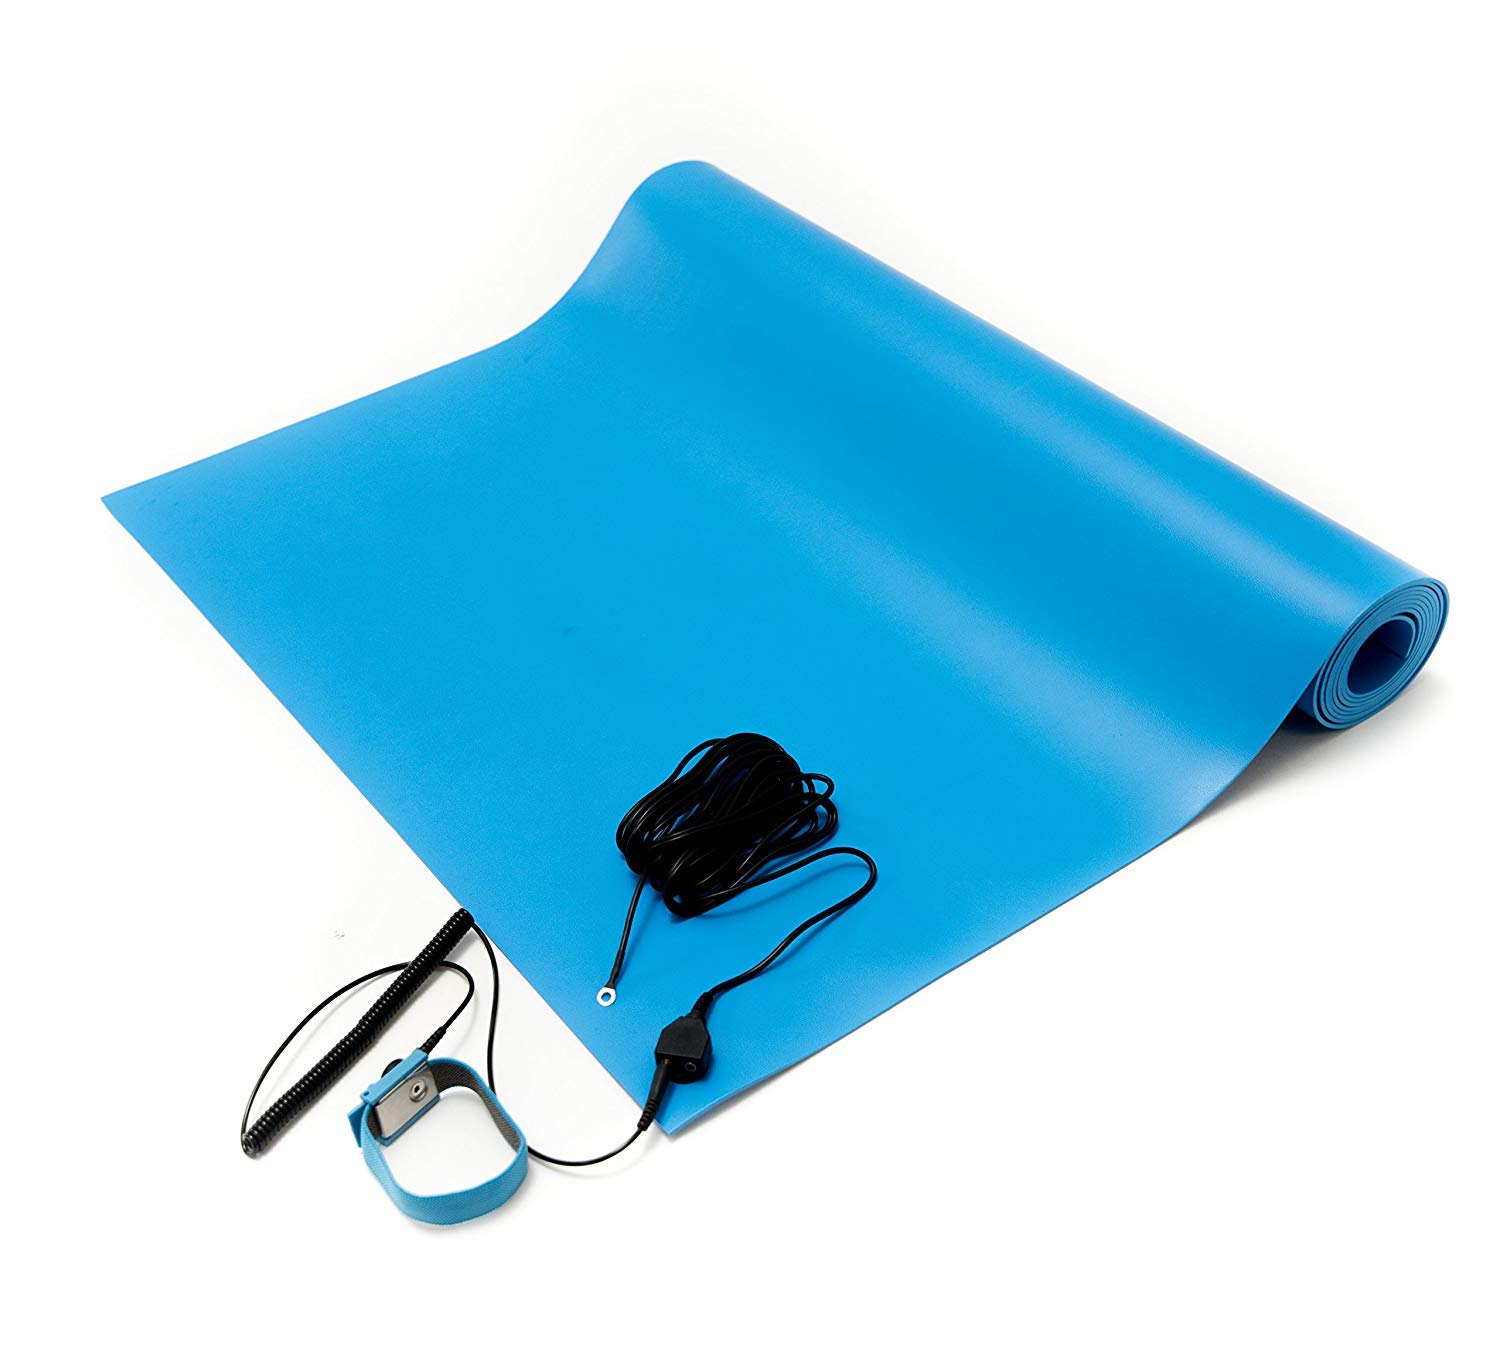 Bertech ESD Mat Kit with a Wrist Strap and a Grounding Cord, 20'' Wide x 30'' Long x 0.093'' Thick, Blue (Made in USA)